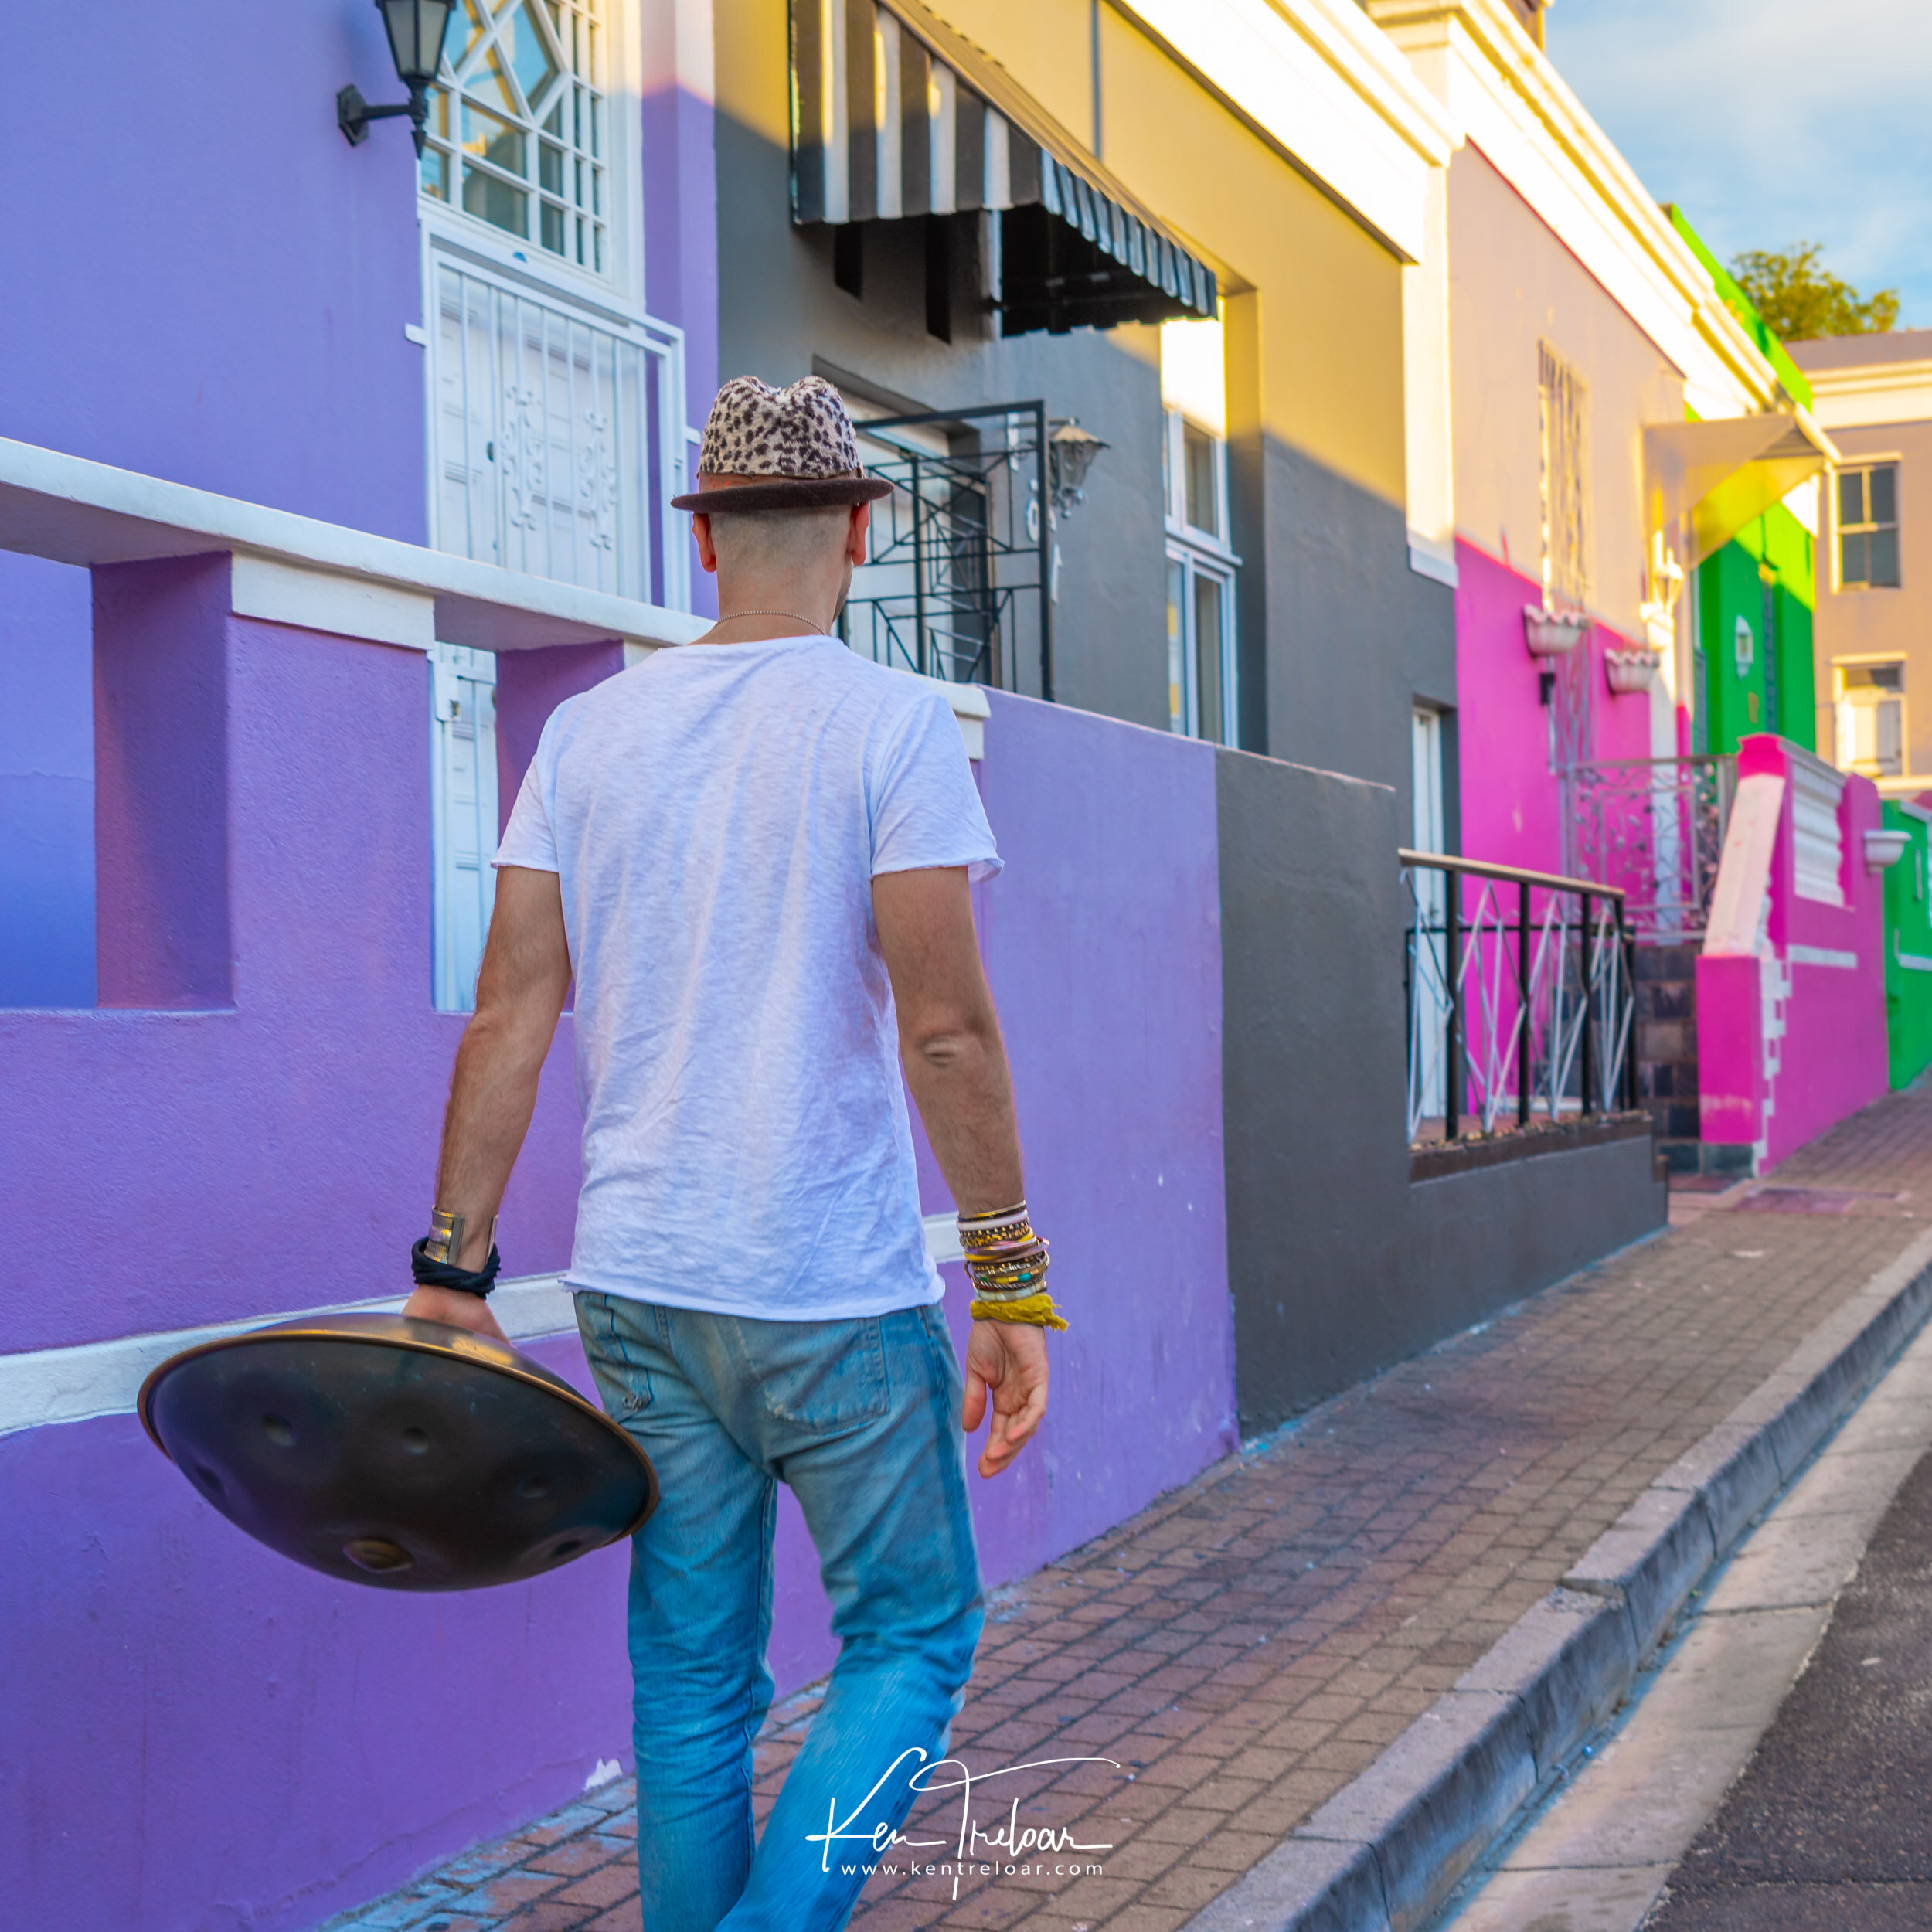 Marco Selvaggio Hang Musical Instrument - Bo-Kaap, Cape Town South Africa - Image by Ken Treloar Photography 2019-3.jpg